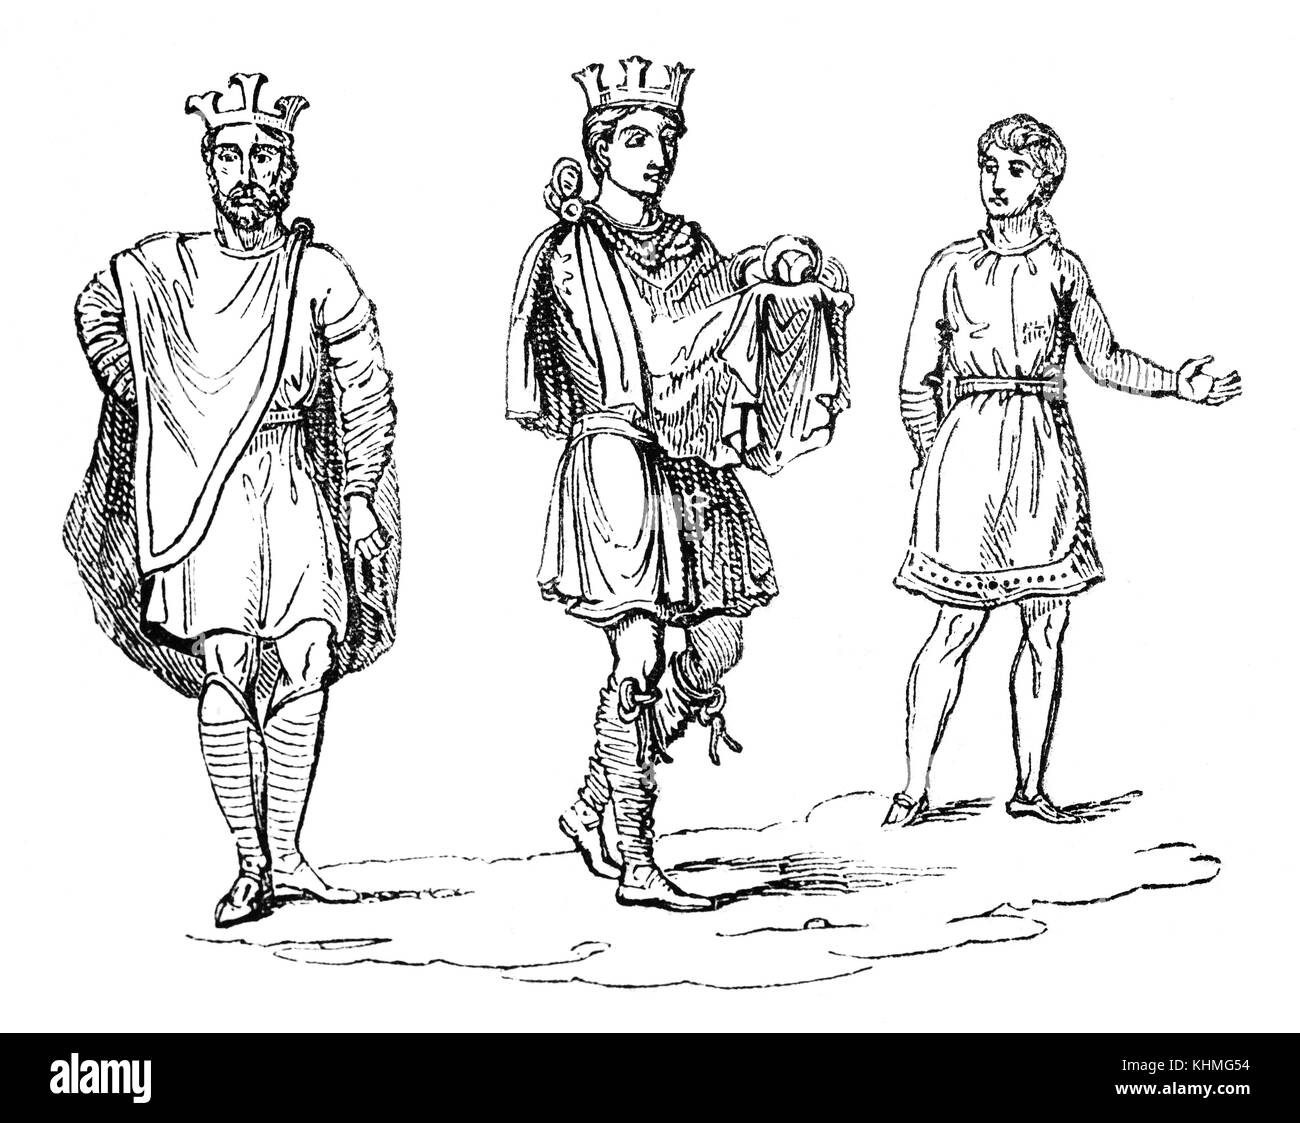 The Civic costume including a crown, Anglo Saxon Royalty in the 9th Century England. - Stock Image